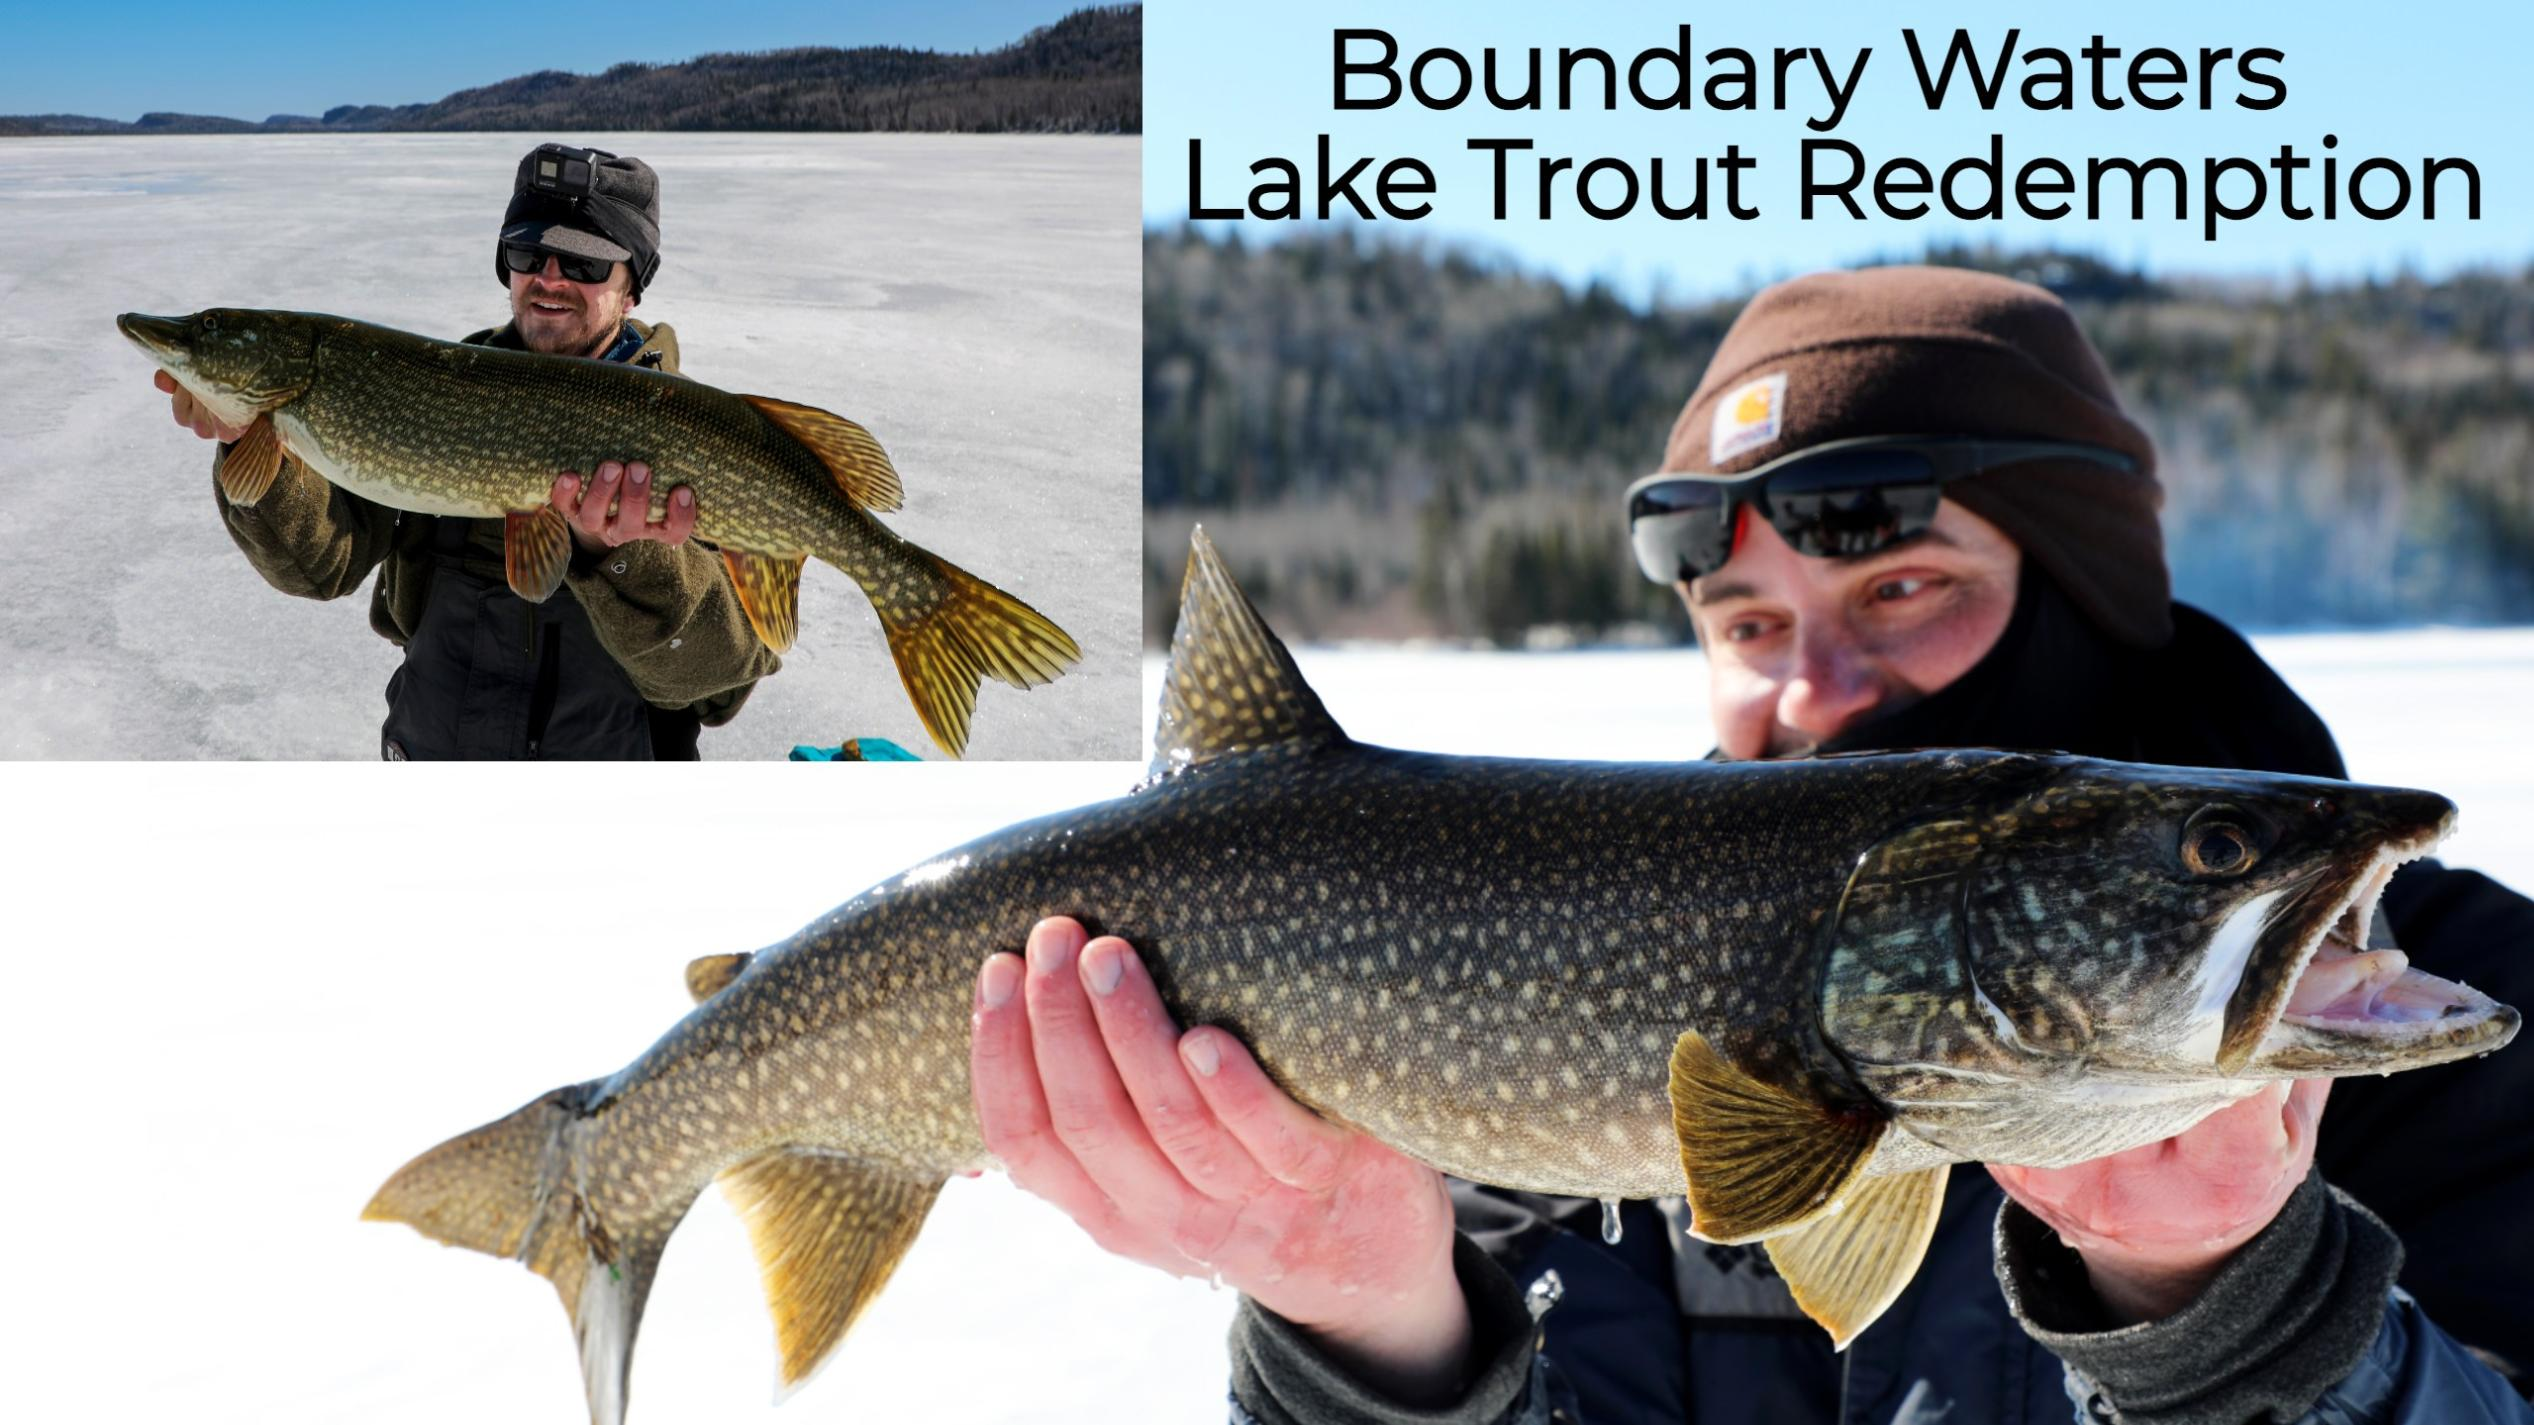 Boundary Waters Lake Trout Redemption